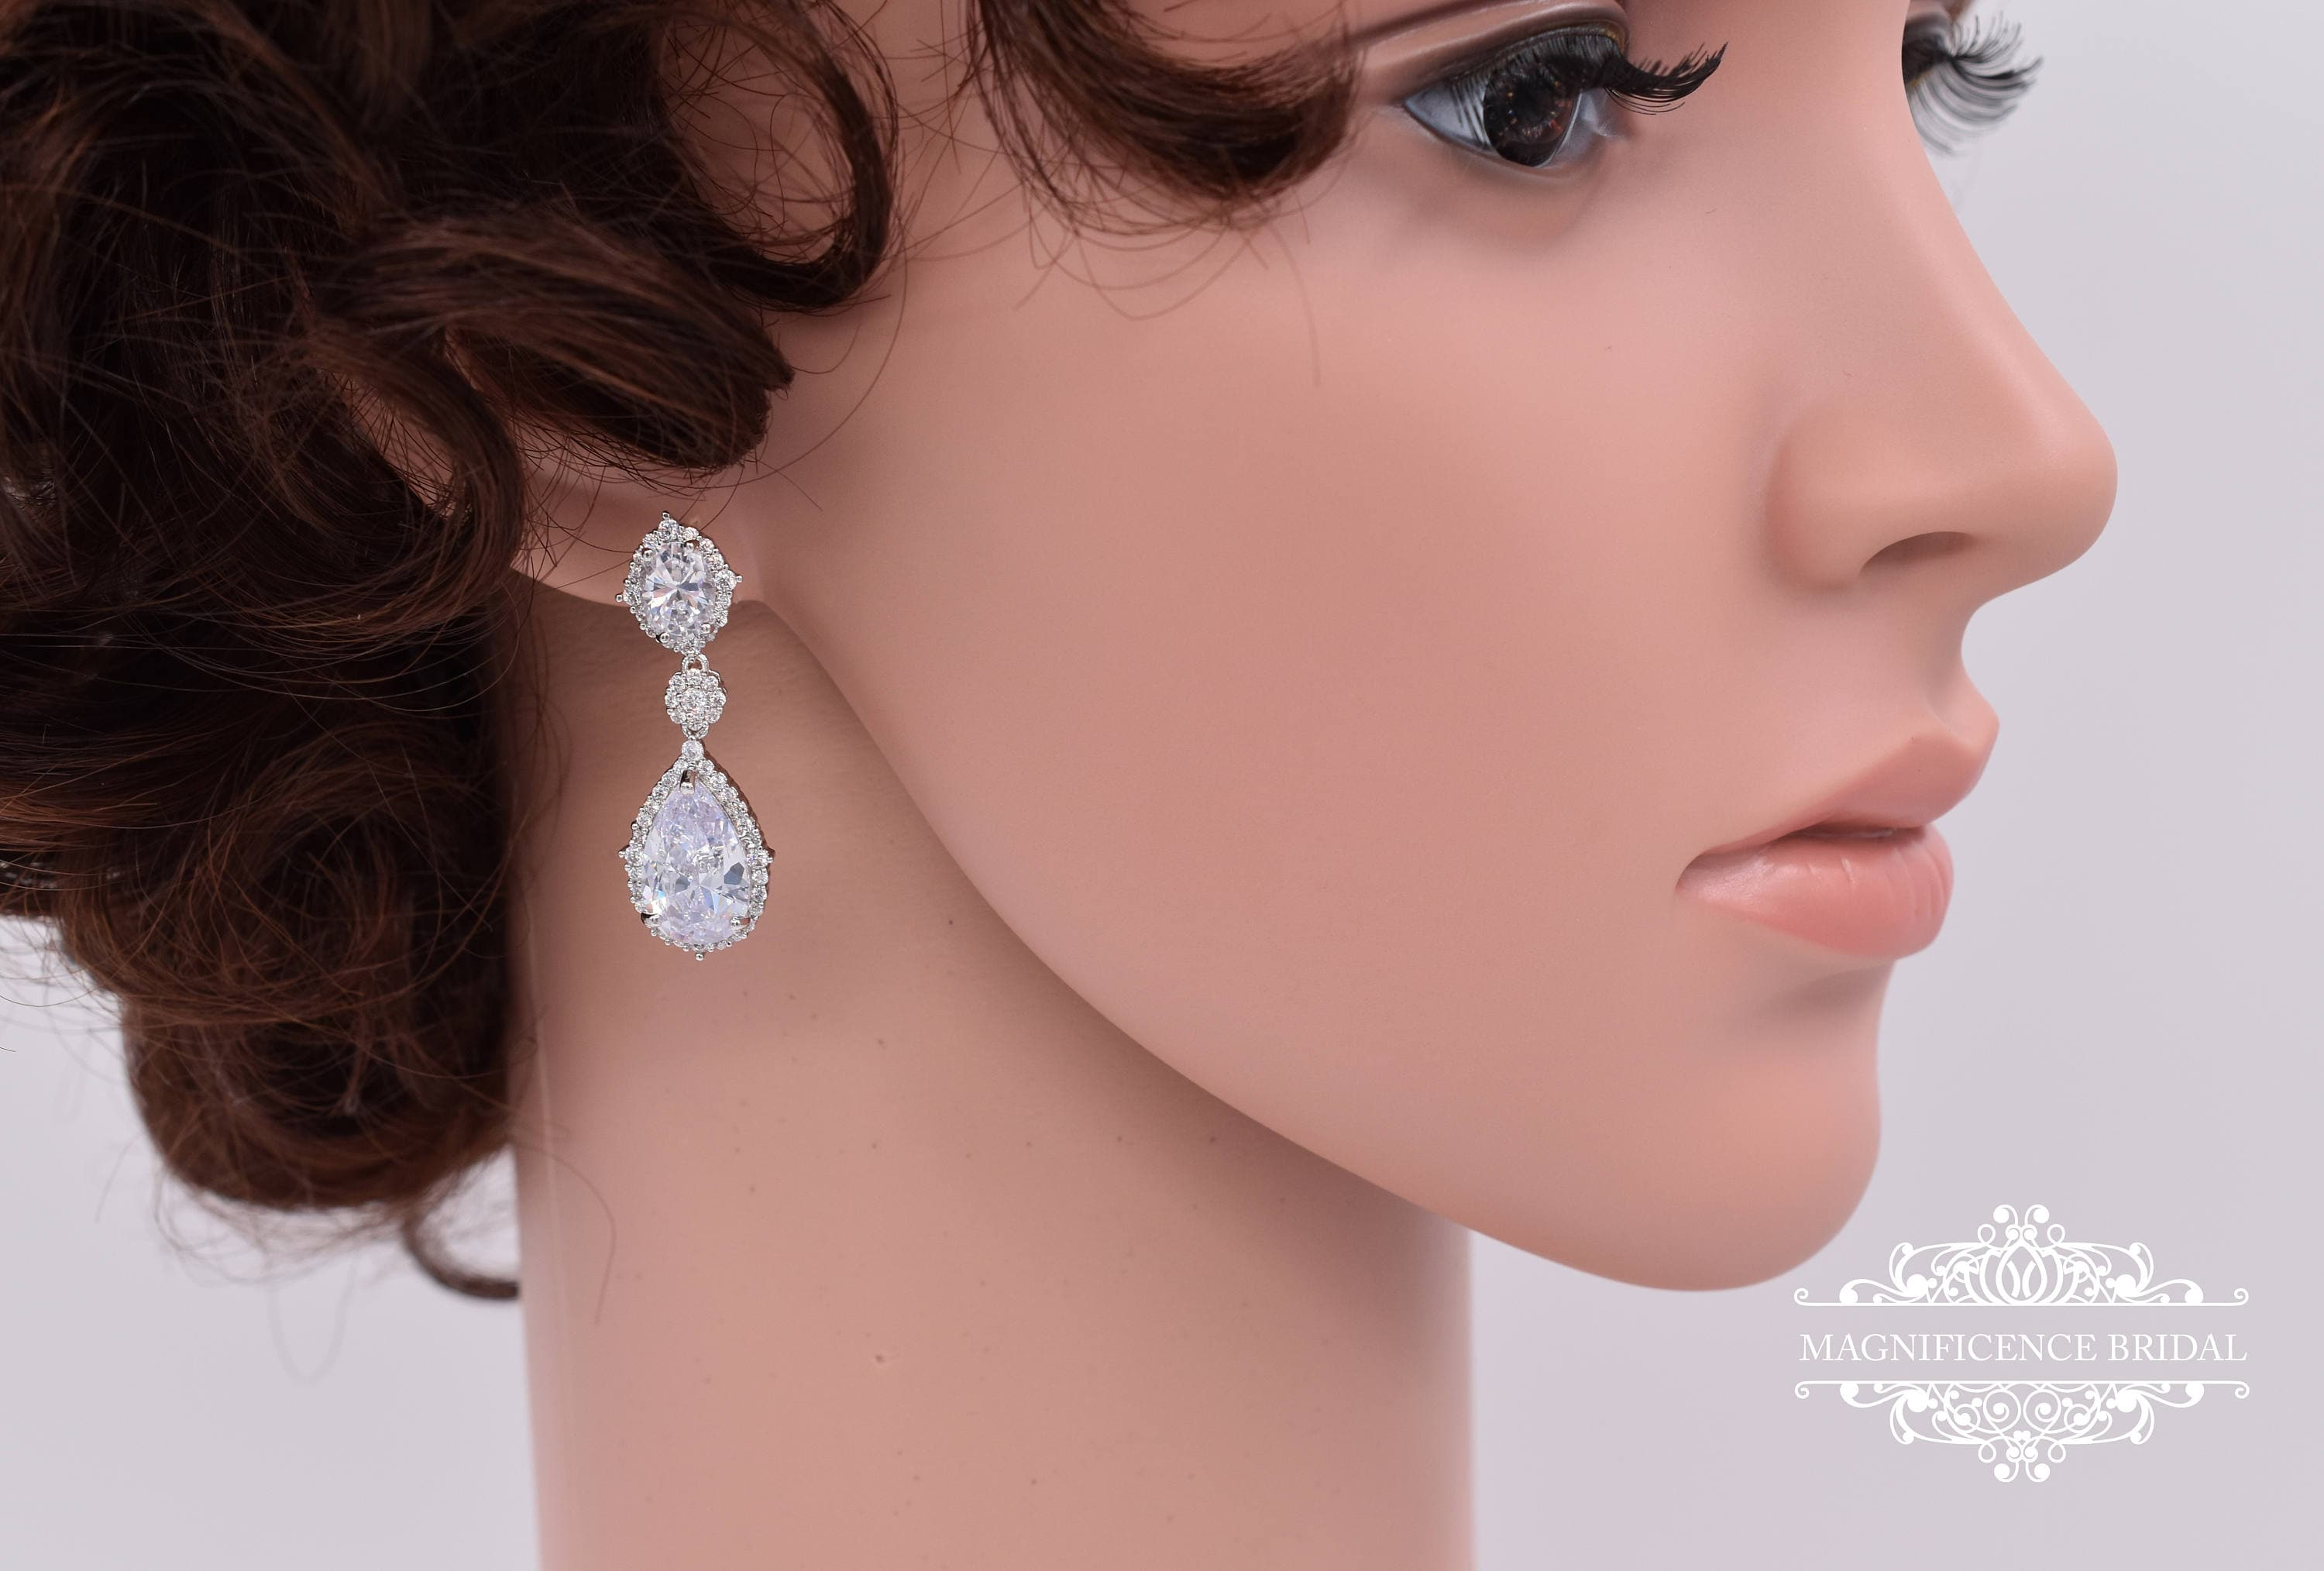 wedding styled earrings latin northern valley elegant shoot the at in vibrant virginia regency dress dominion